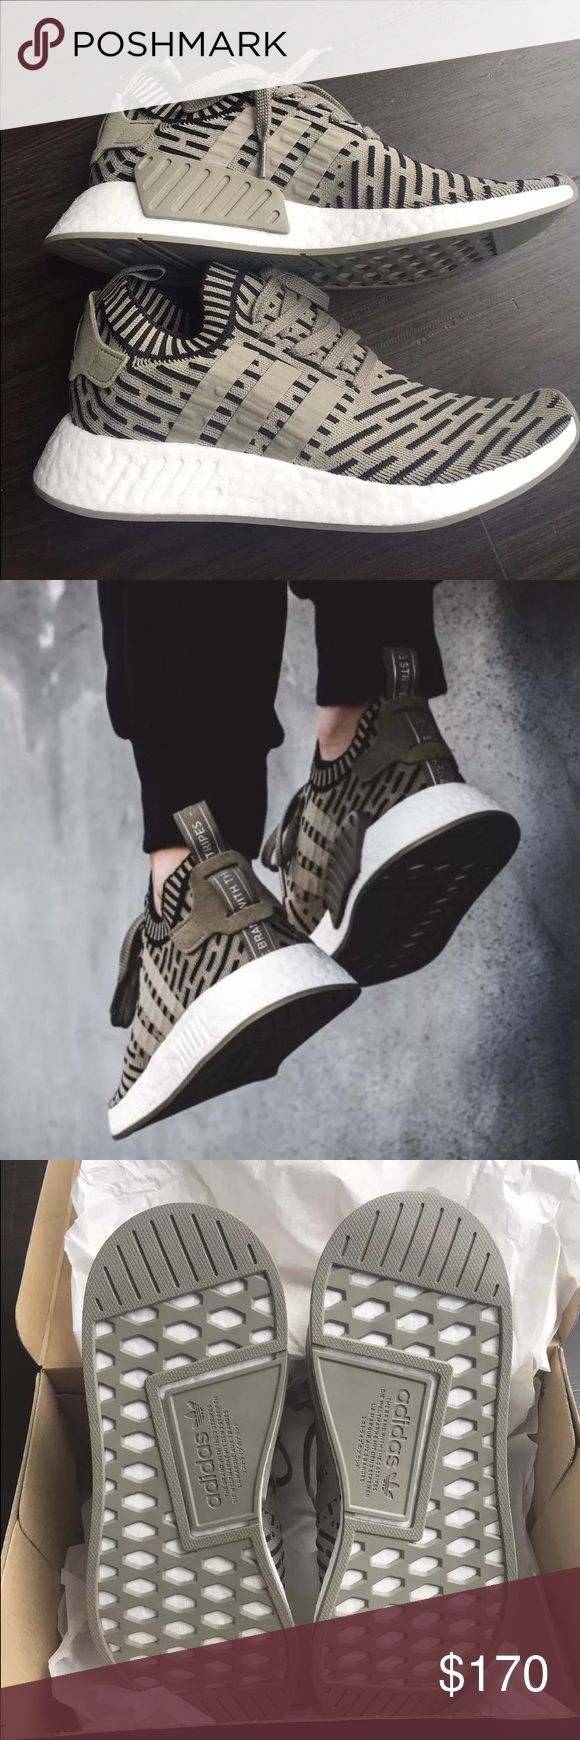 Adidas NMD R2 Olive Black for sale · Slang